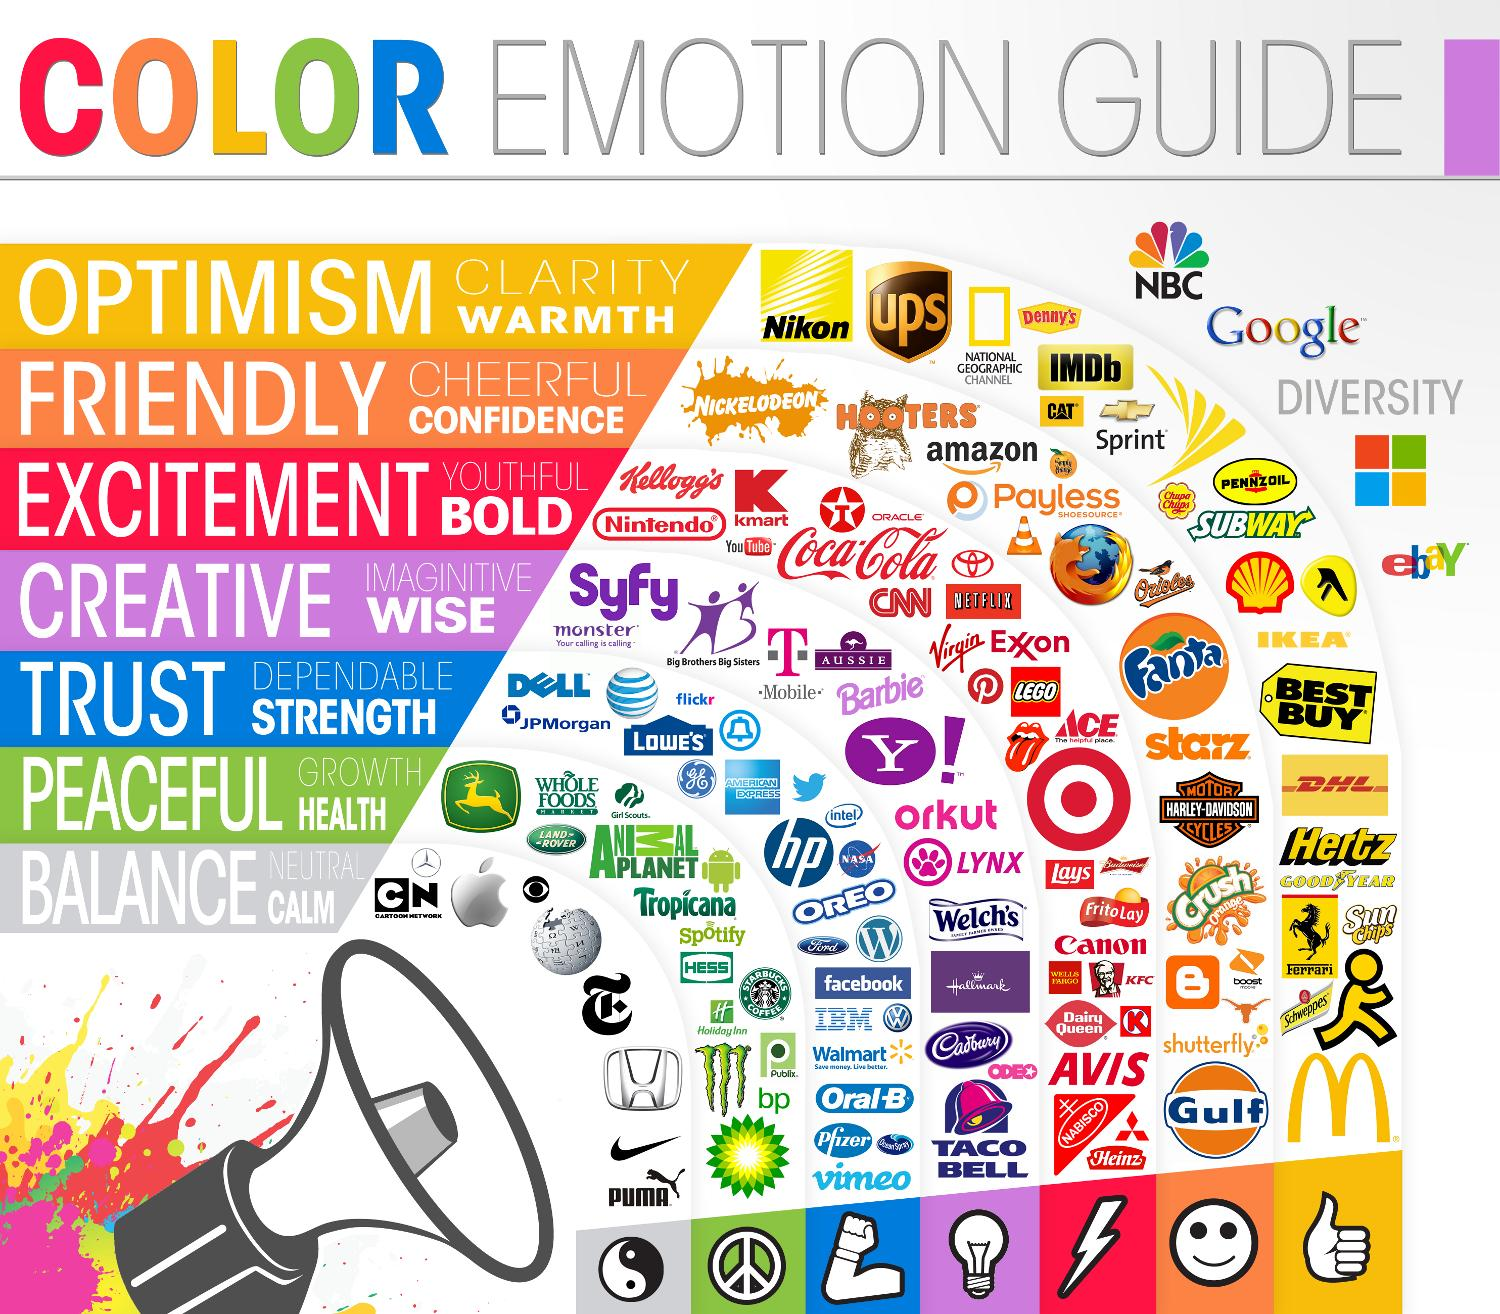 Color emotion guide chart